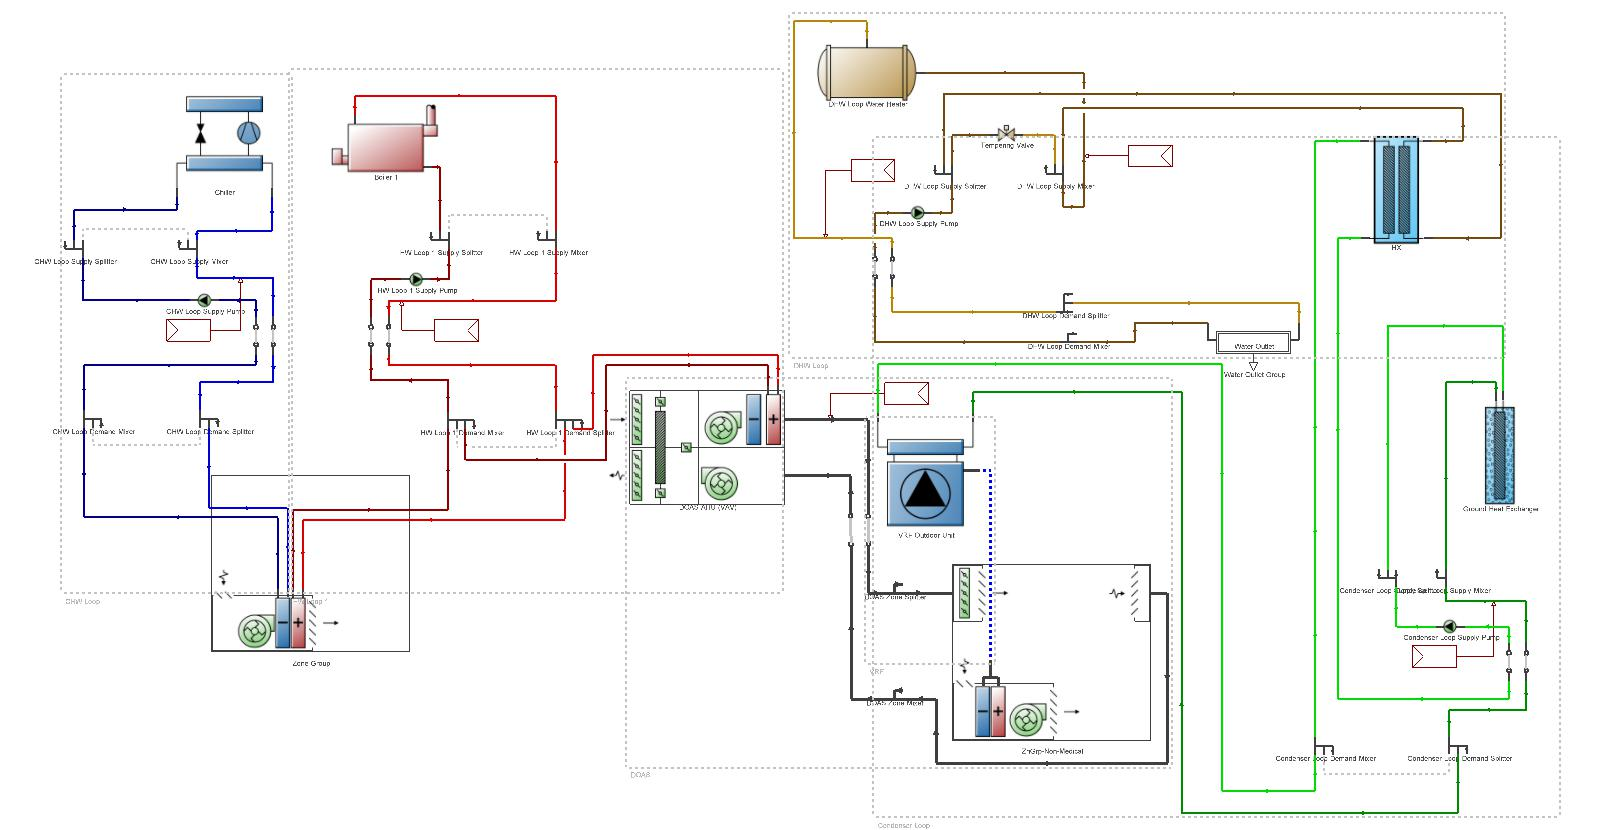 What Is A Good Software To Draw Hvac Equipments Plan Unmet Hours Cad Drawing This Shows The Schematic Of An Evaporatively Cooled Chiller Evaporative Details Not Shown As Components But Included In Data Serving One